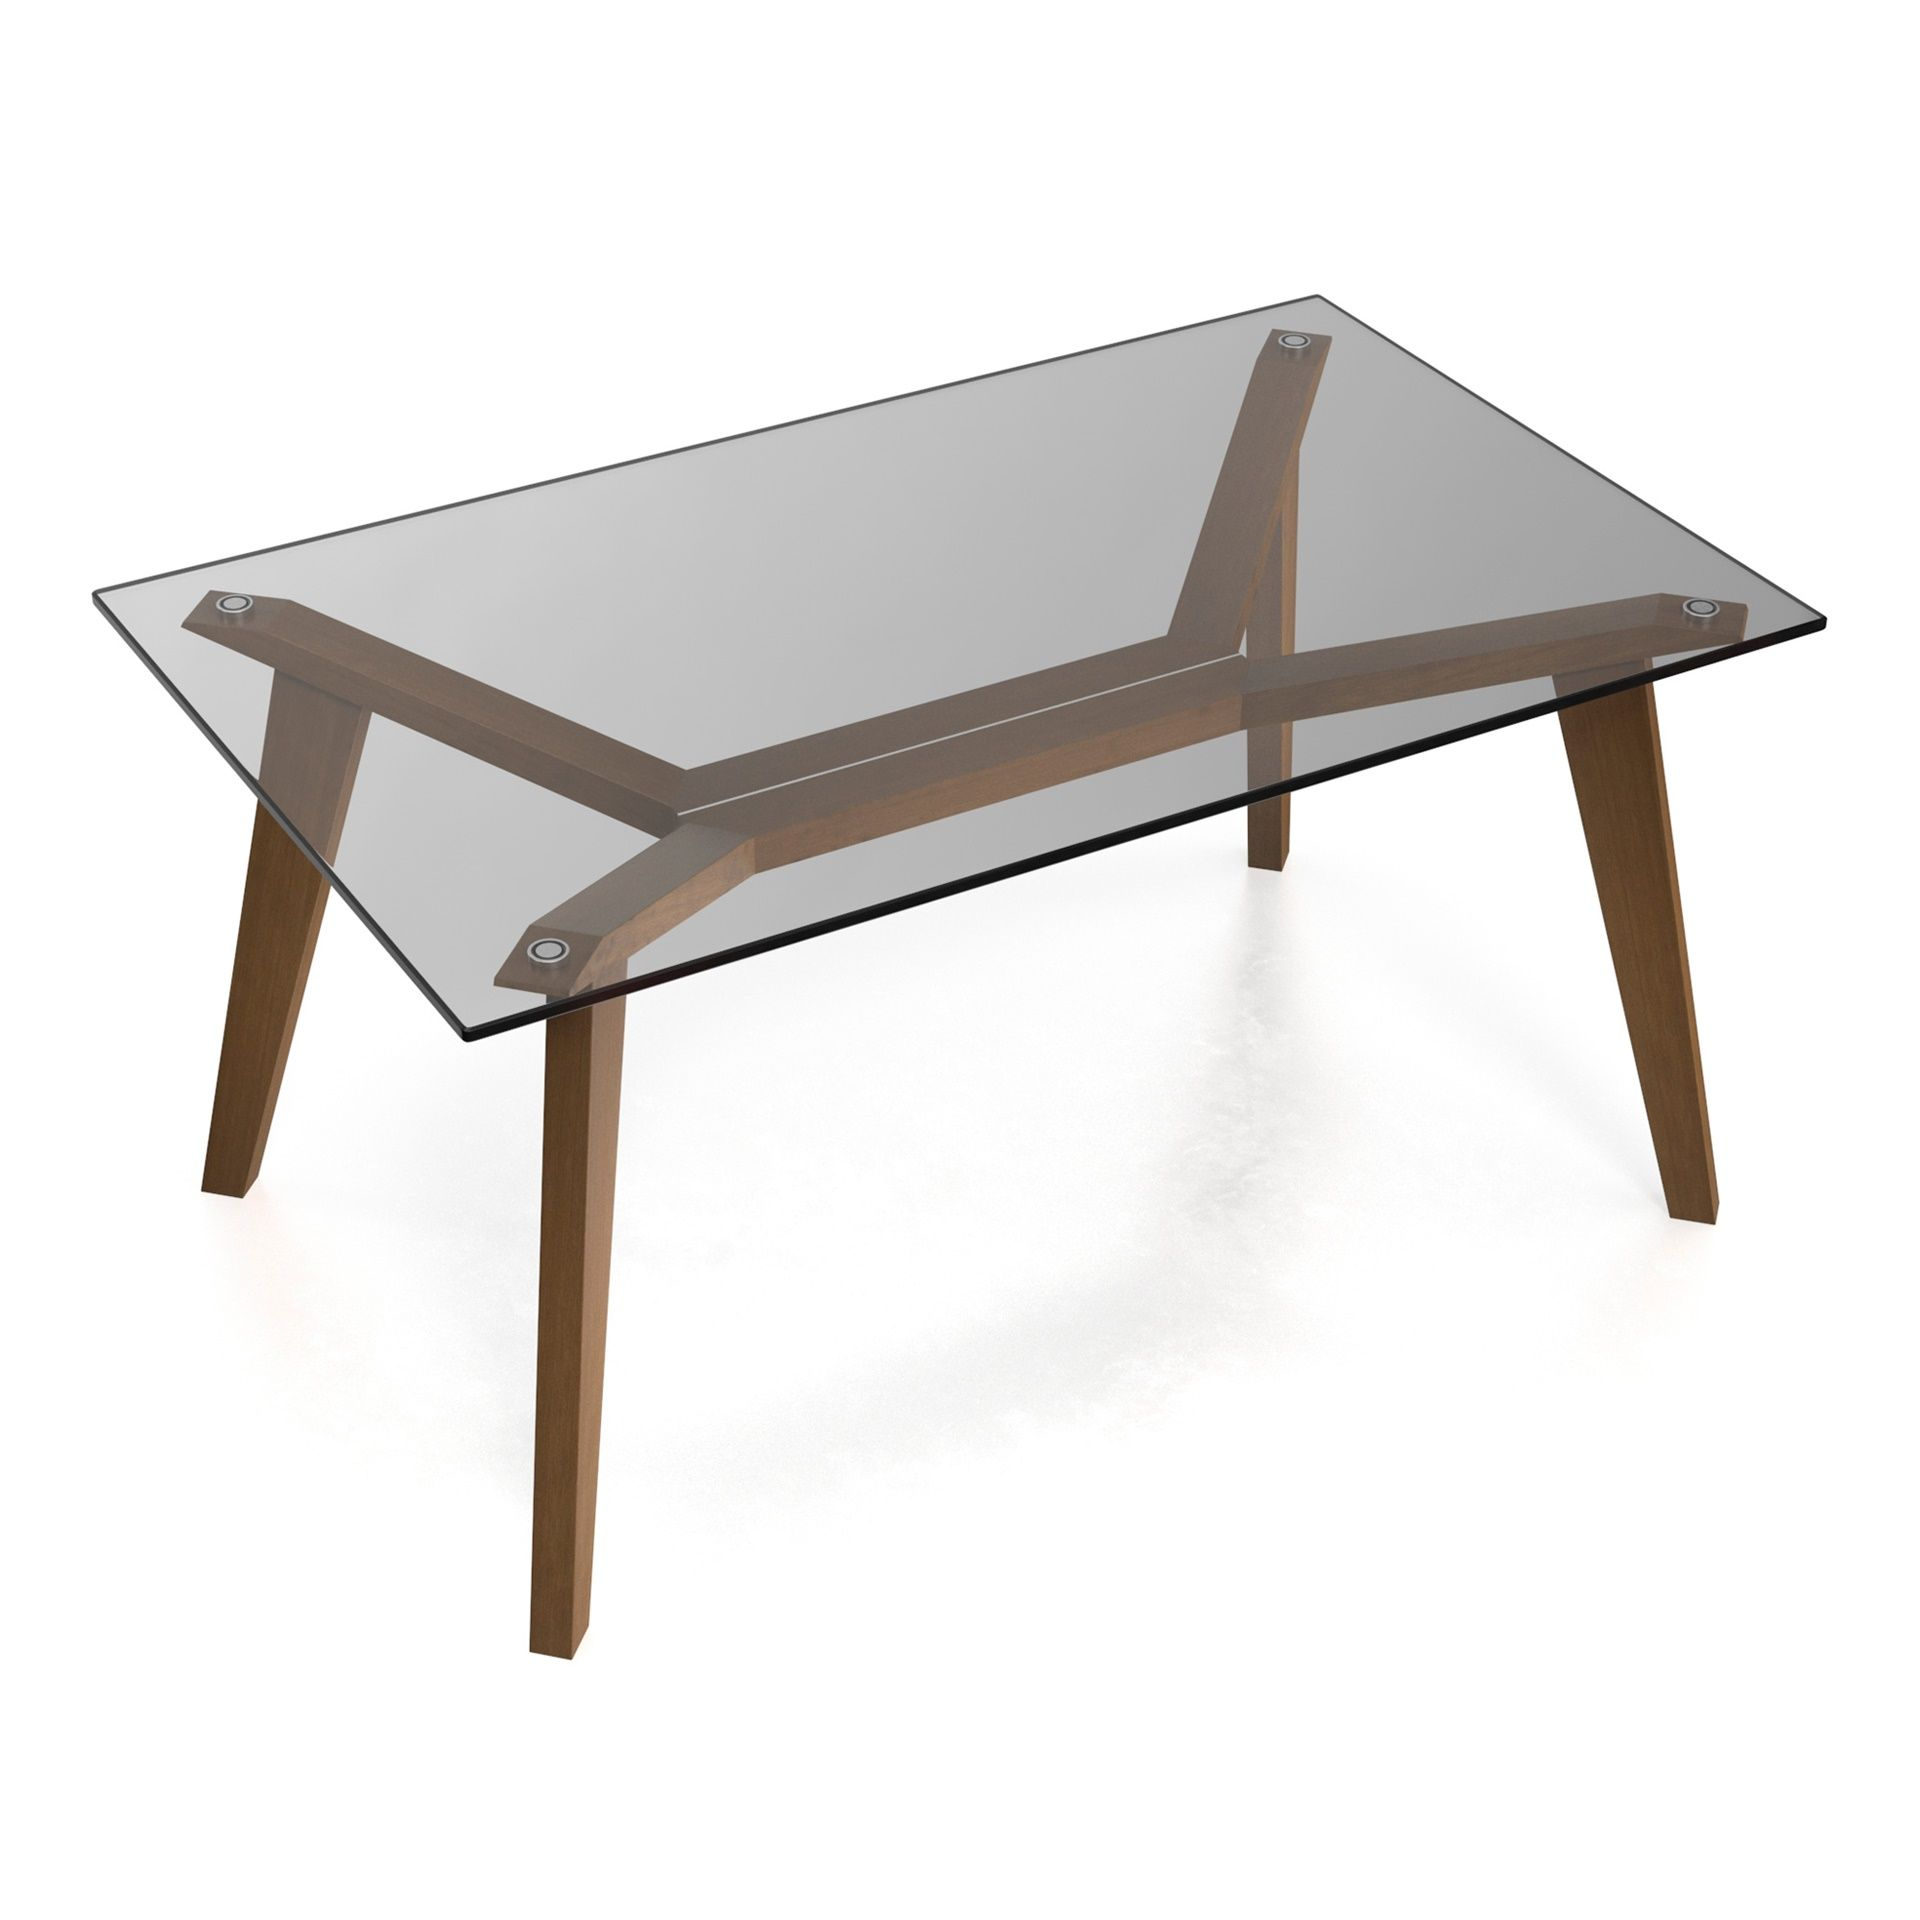 Asta Glass Dining Table In 2021 Glass Dining Table Midcentury Modern Dining Table Wood Dining Table [ 1920 x 1920 Pixel ]